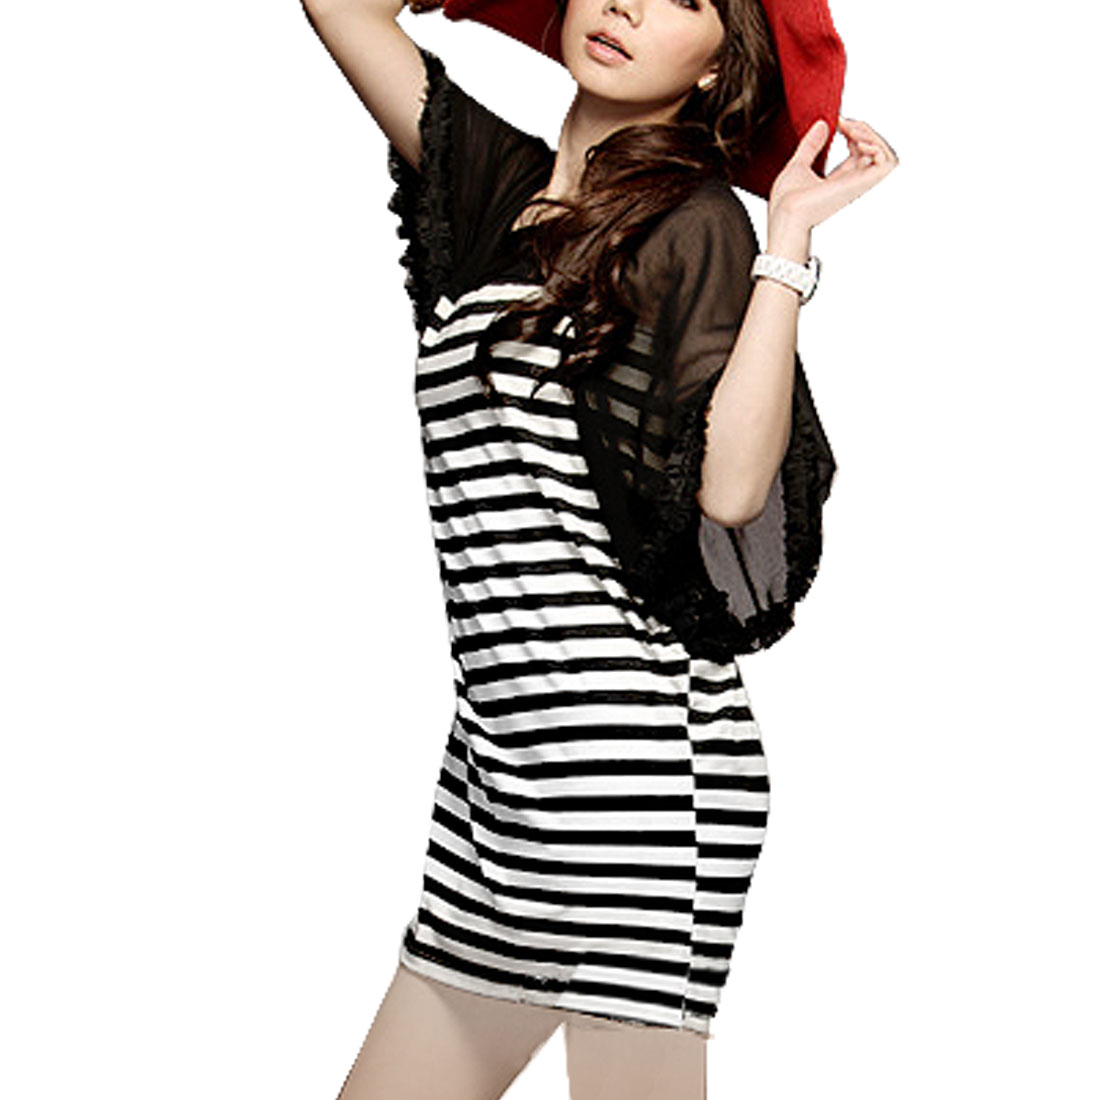 Lady Black White Boat Neck Flutter Chiffon Sleeve Striped Dress S